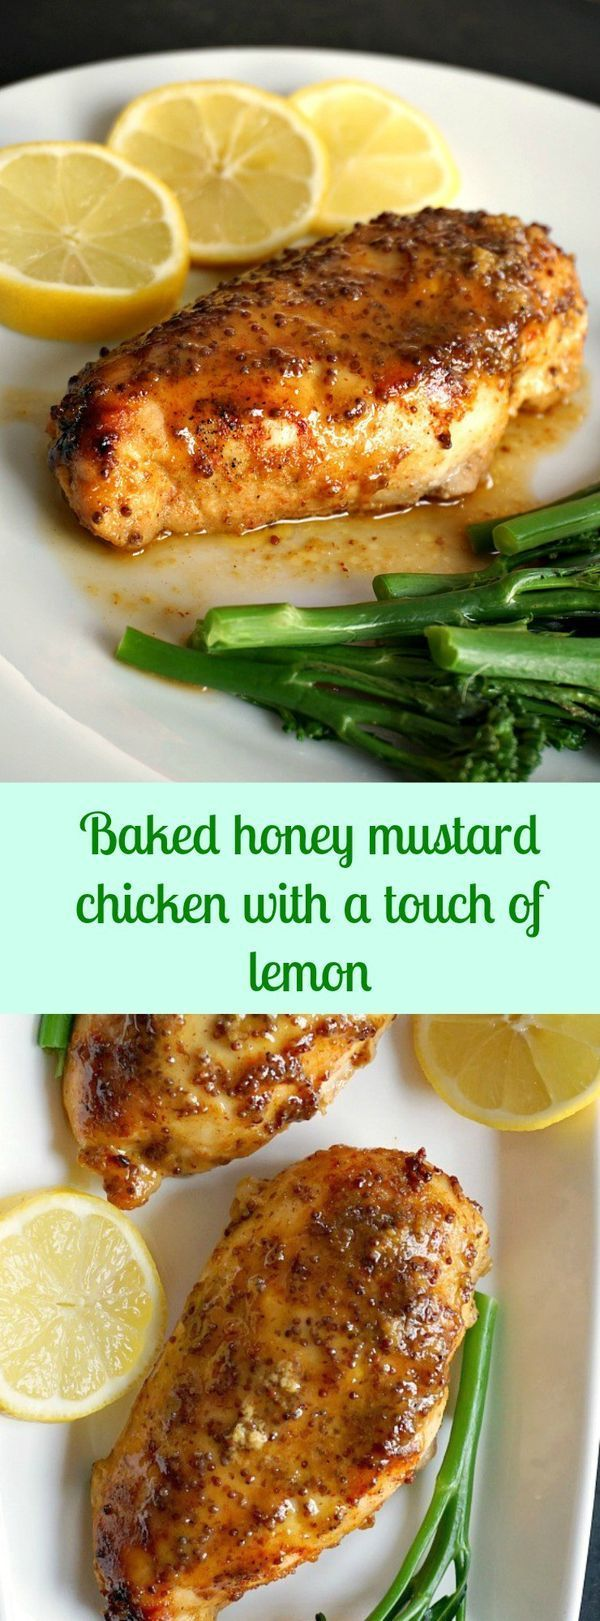 baked honey mustard chicken with a touch of lemon a fantastic meal